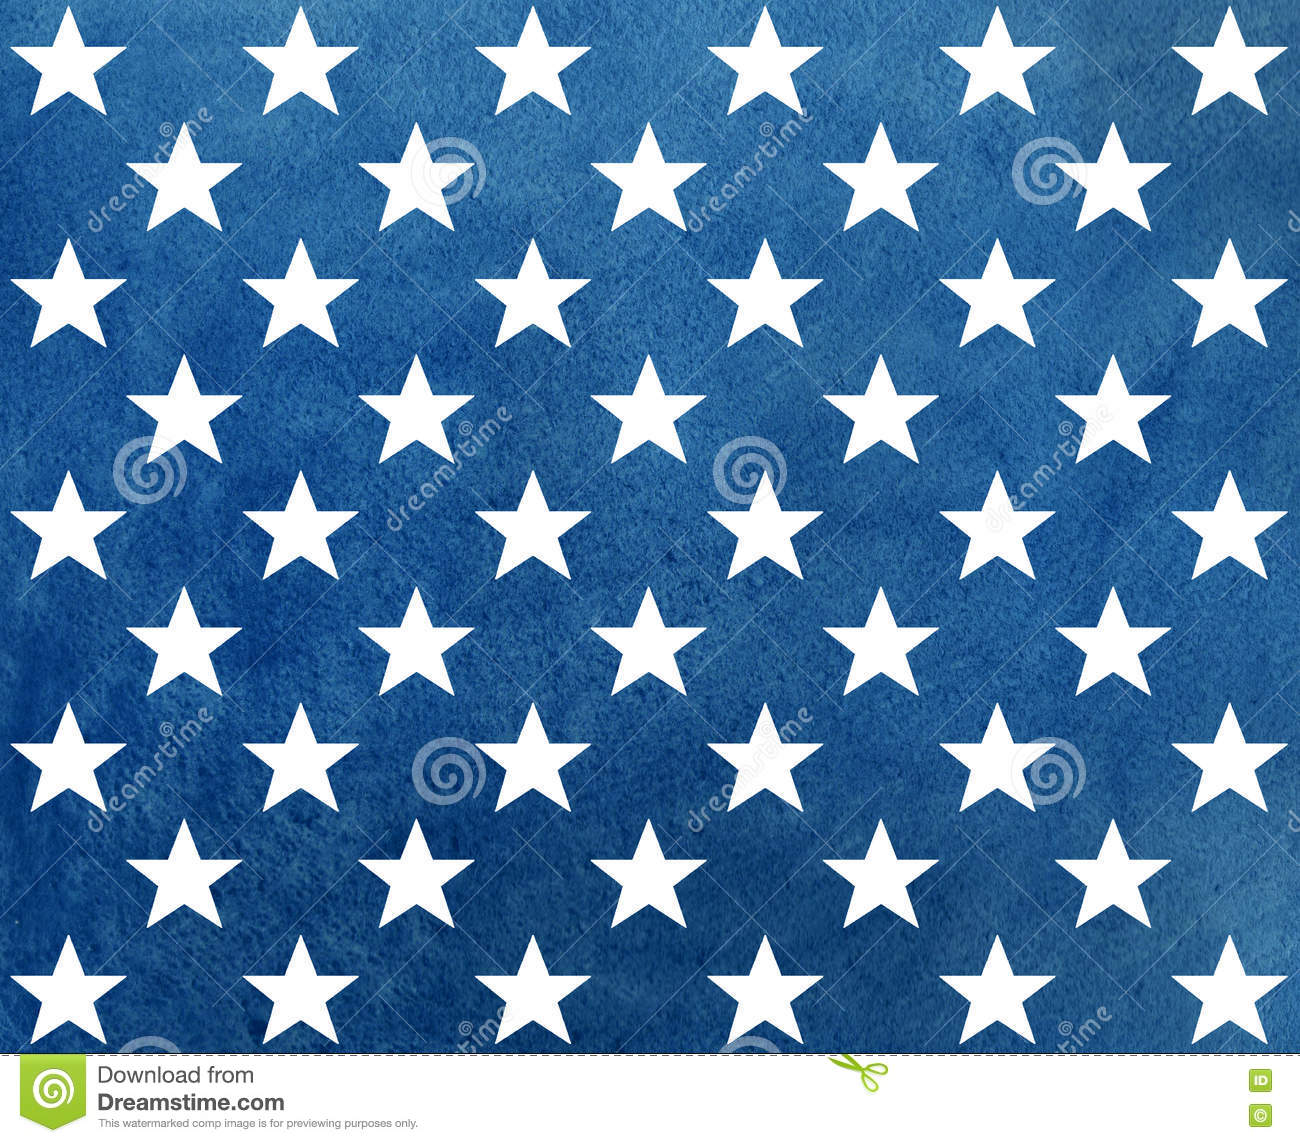 Abstract dark blue watercolor pattern with white stars.